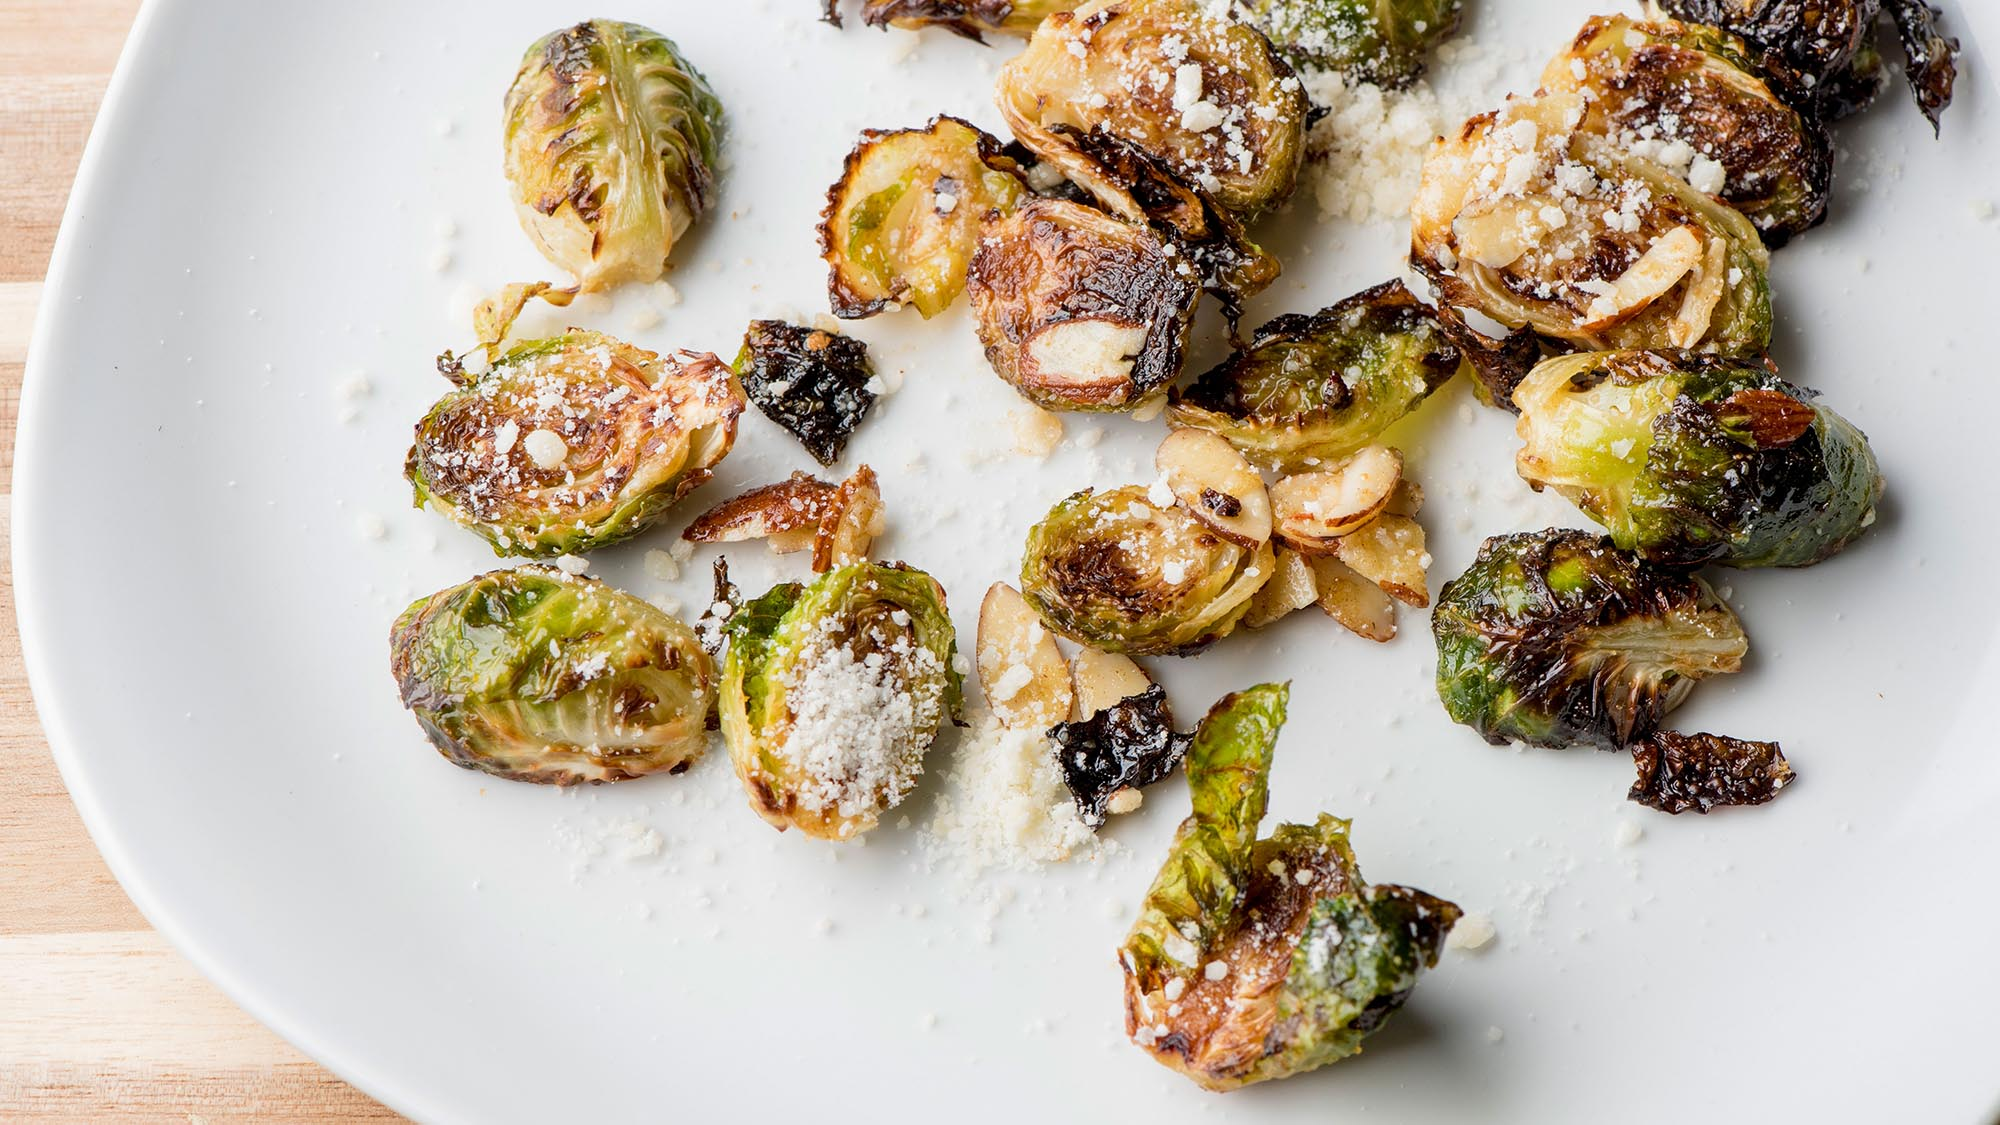 roasted_brussels_sprouts_2000x1125.jpg